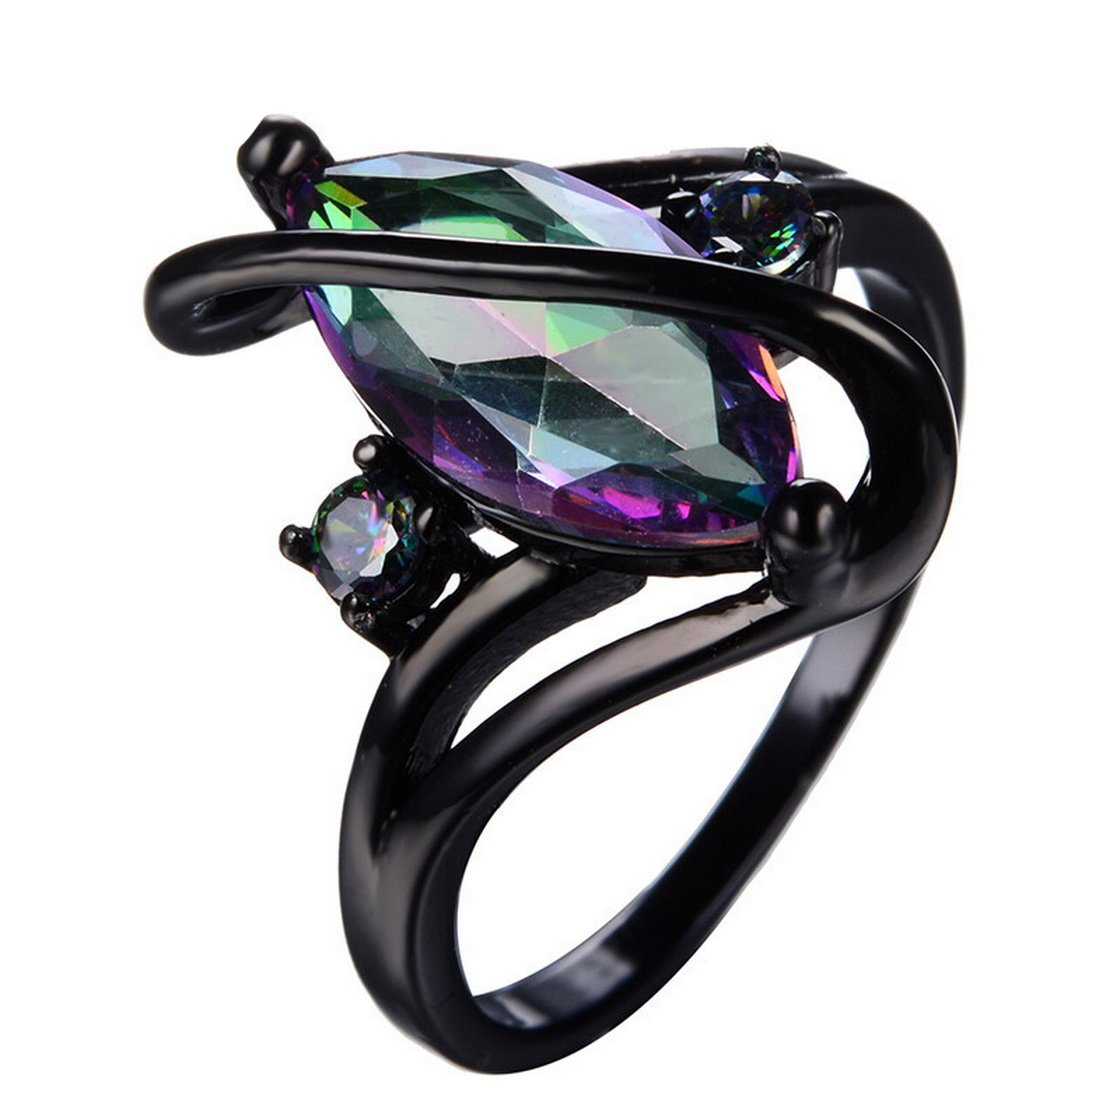 WOWJEW Colorful Cubic Zirconia Rings Wedding 14KT Black Gold Filled Rainbow Sapphire Ring WOWJEW-Mystic-Topaz-2 2D77SFC31